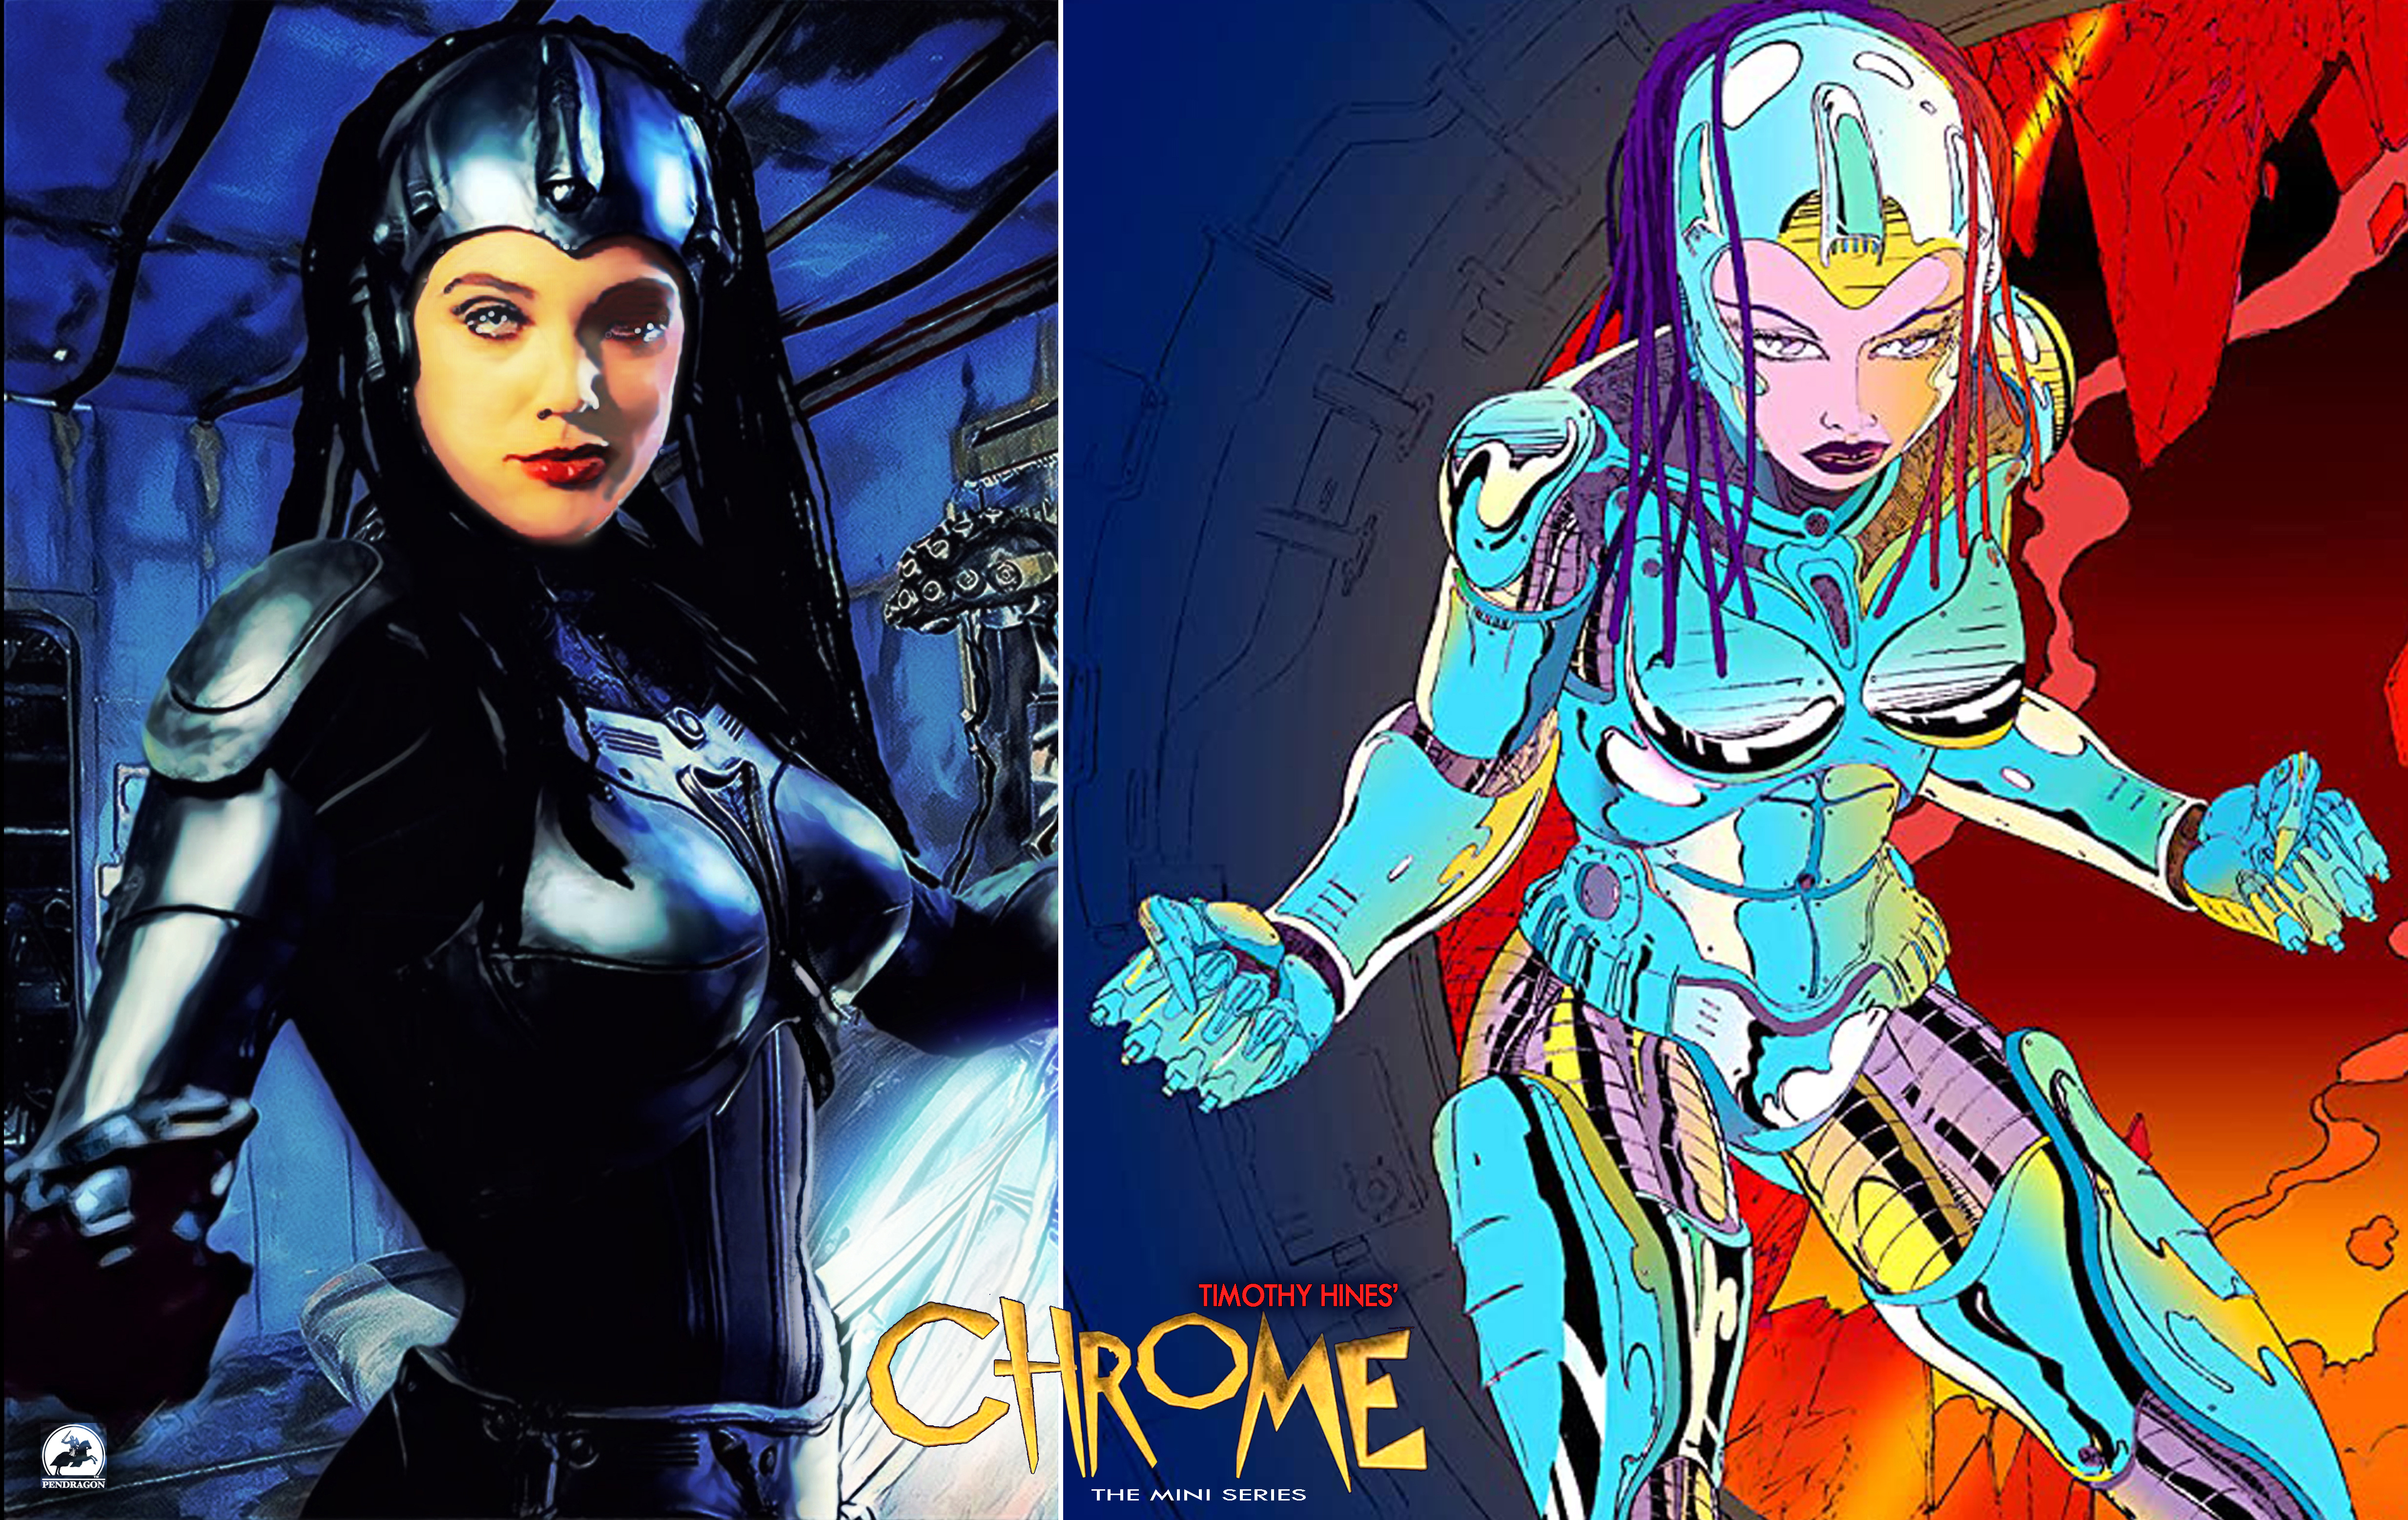 Chrome The Series Long Anticipated Years In The Making Action Fantasy Adventure Begins Streaming May 30